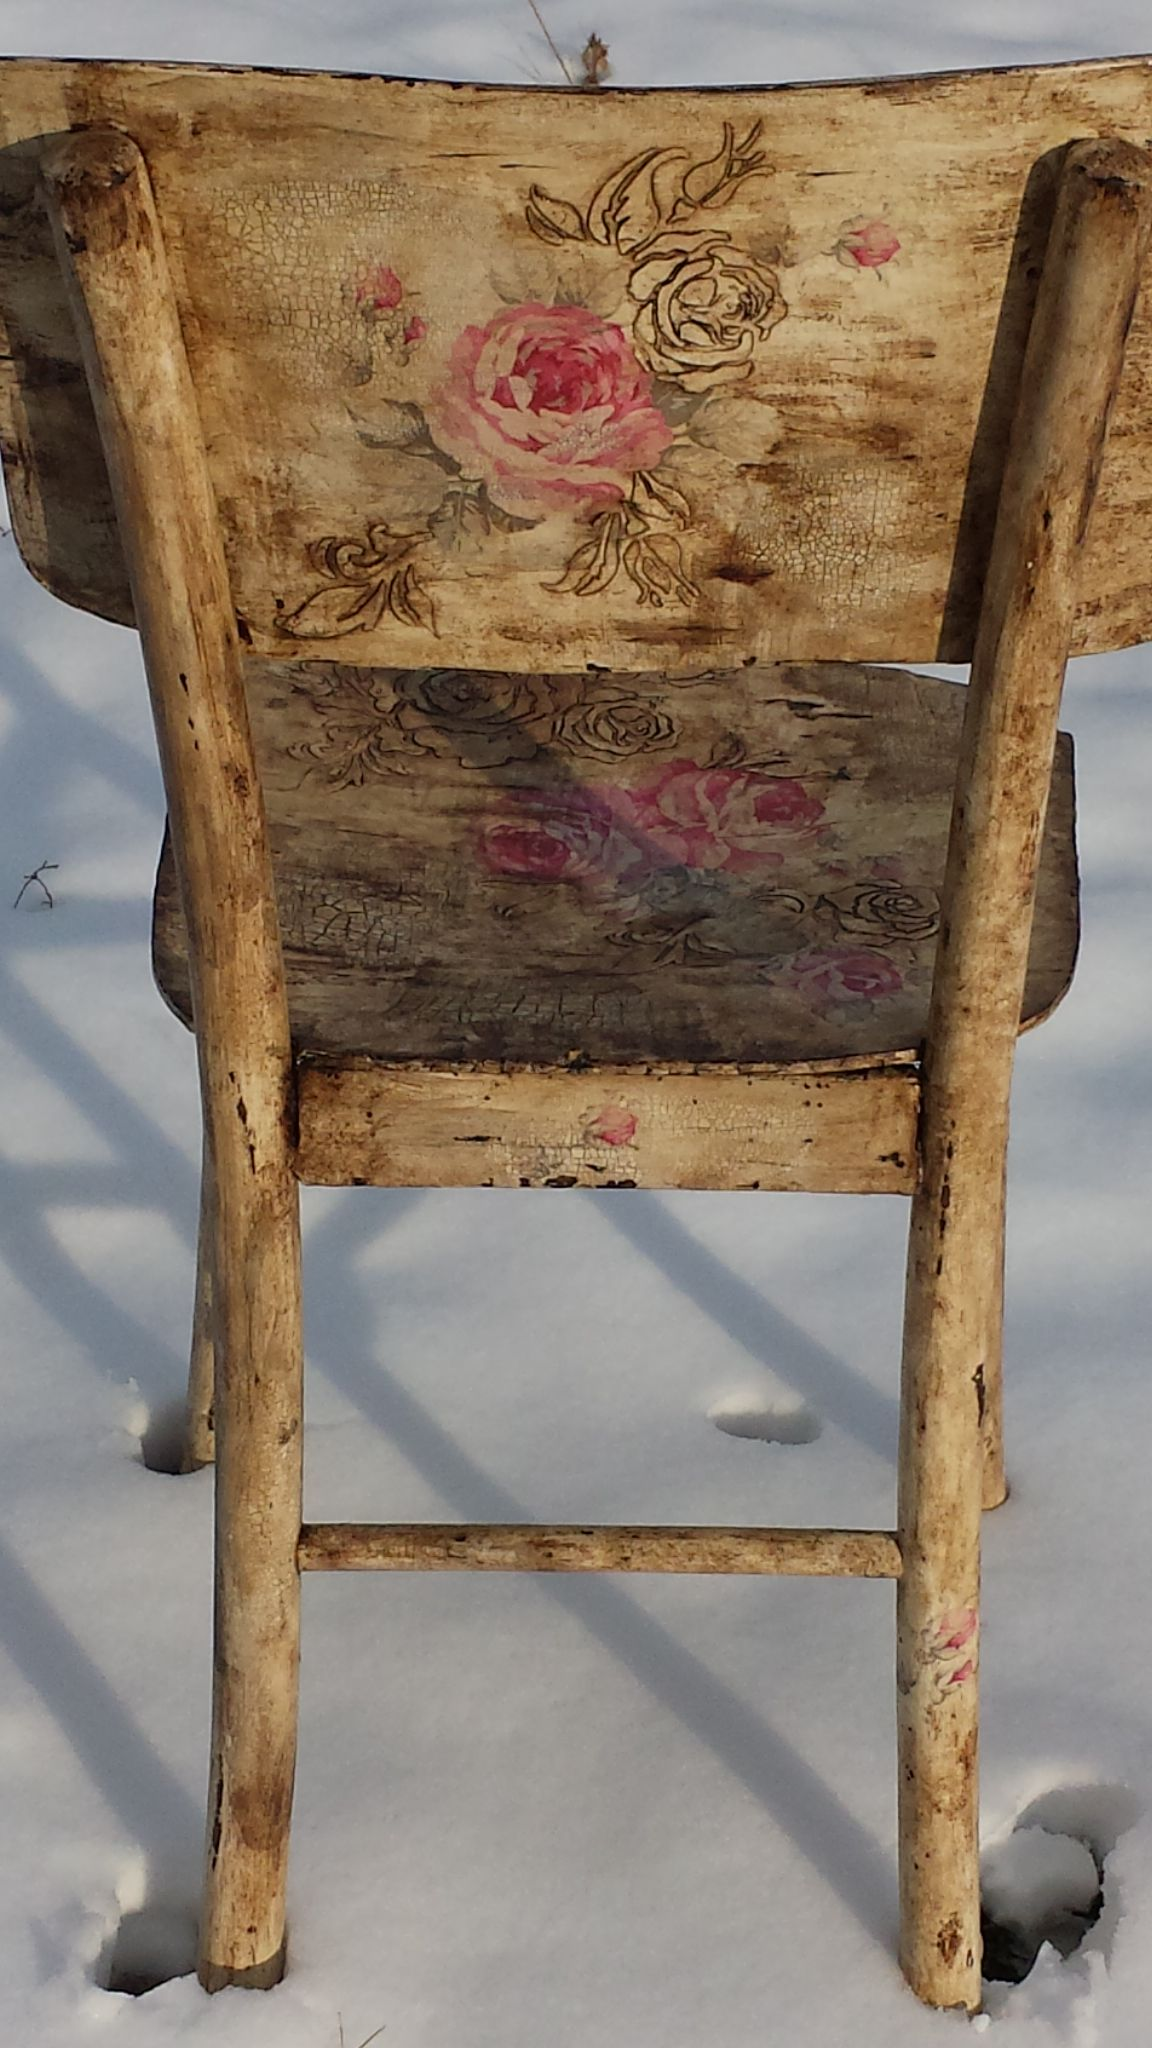 I have just the chair for this now to find the talent for Mobili wooden art